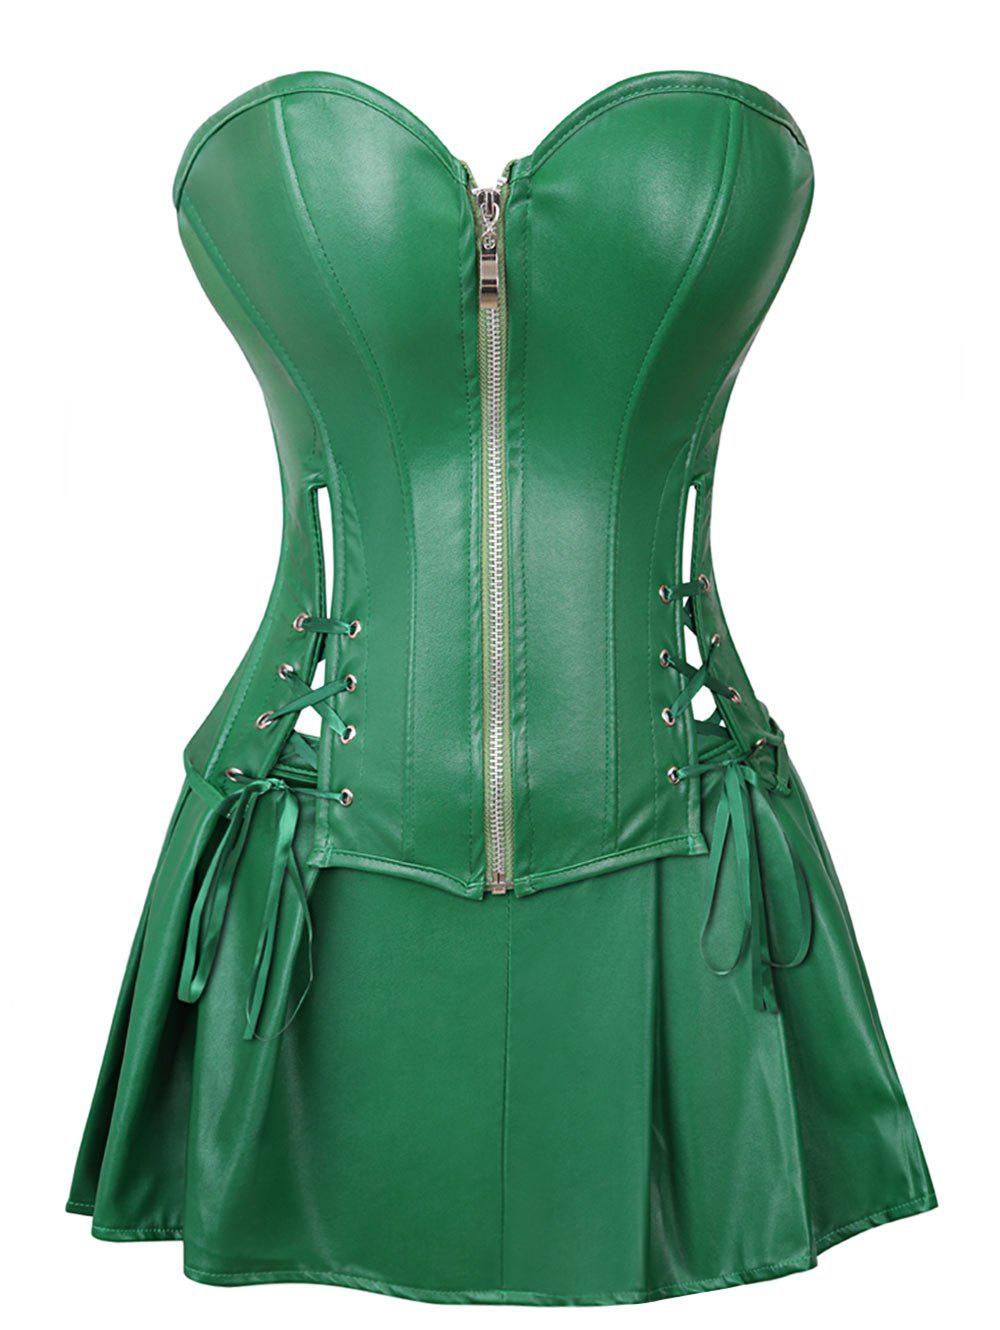 Fancy Strapless Plus Size Lace Up Corset with Mini Skirt